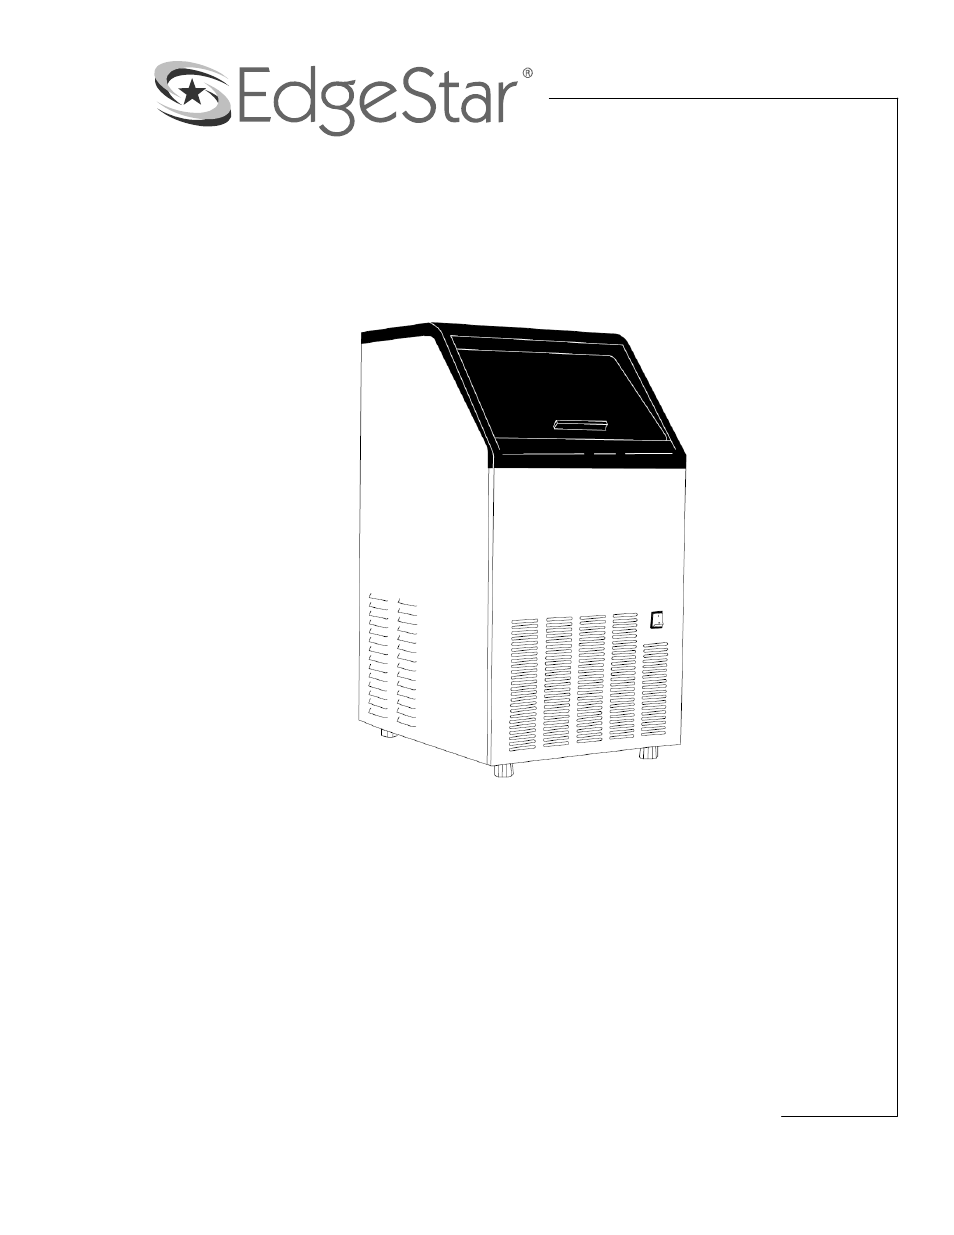 edgestar ib1000ss user manual 22 pages also for ib1500ss ib650ss rh manualsdir com EdgeStar Ir EdgeStar Ir